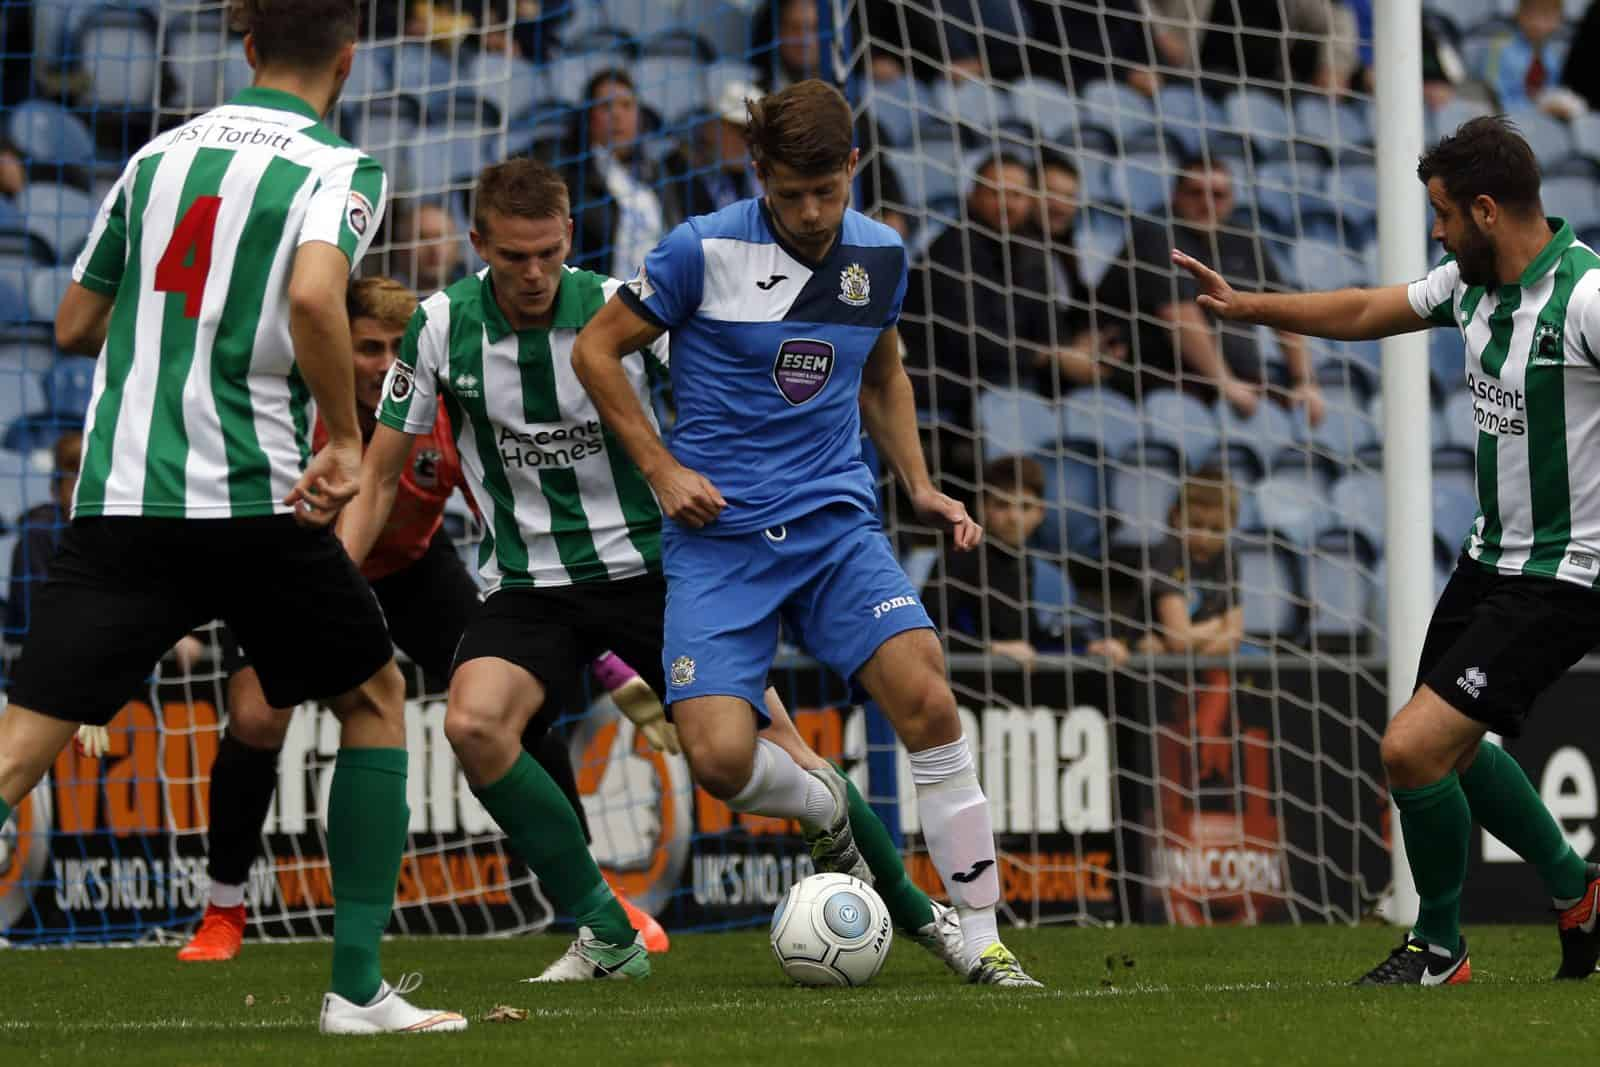 Jason Oswell, Stockport County 1-3 Blyth Spartans 14.10.17